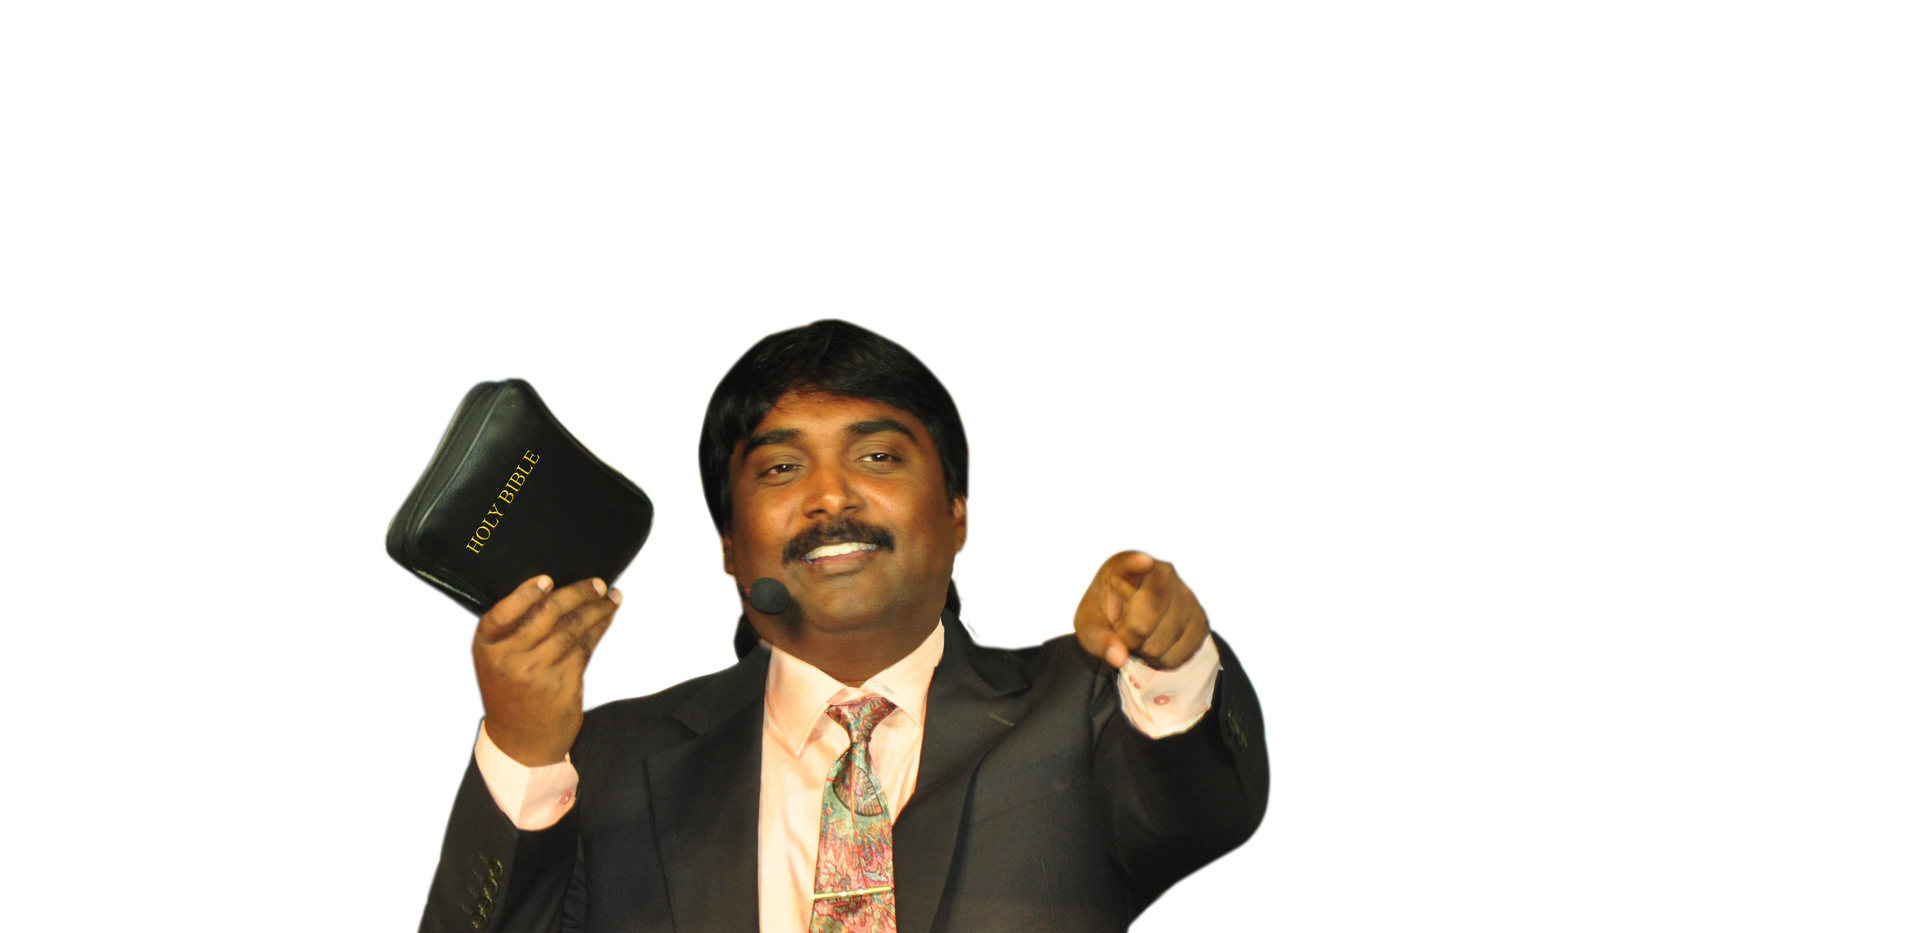 LPB WITH BIBLE.png